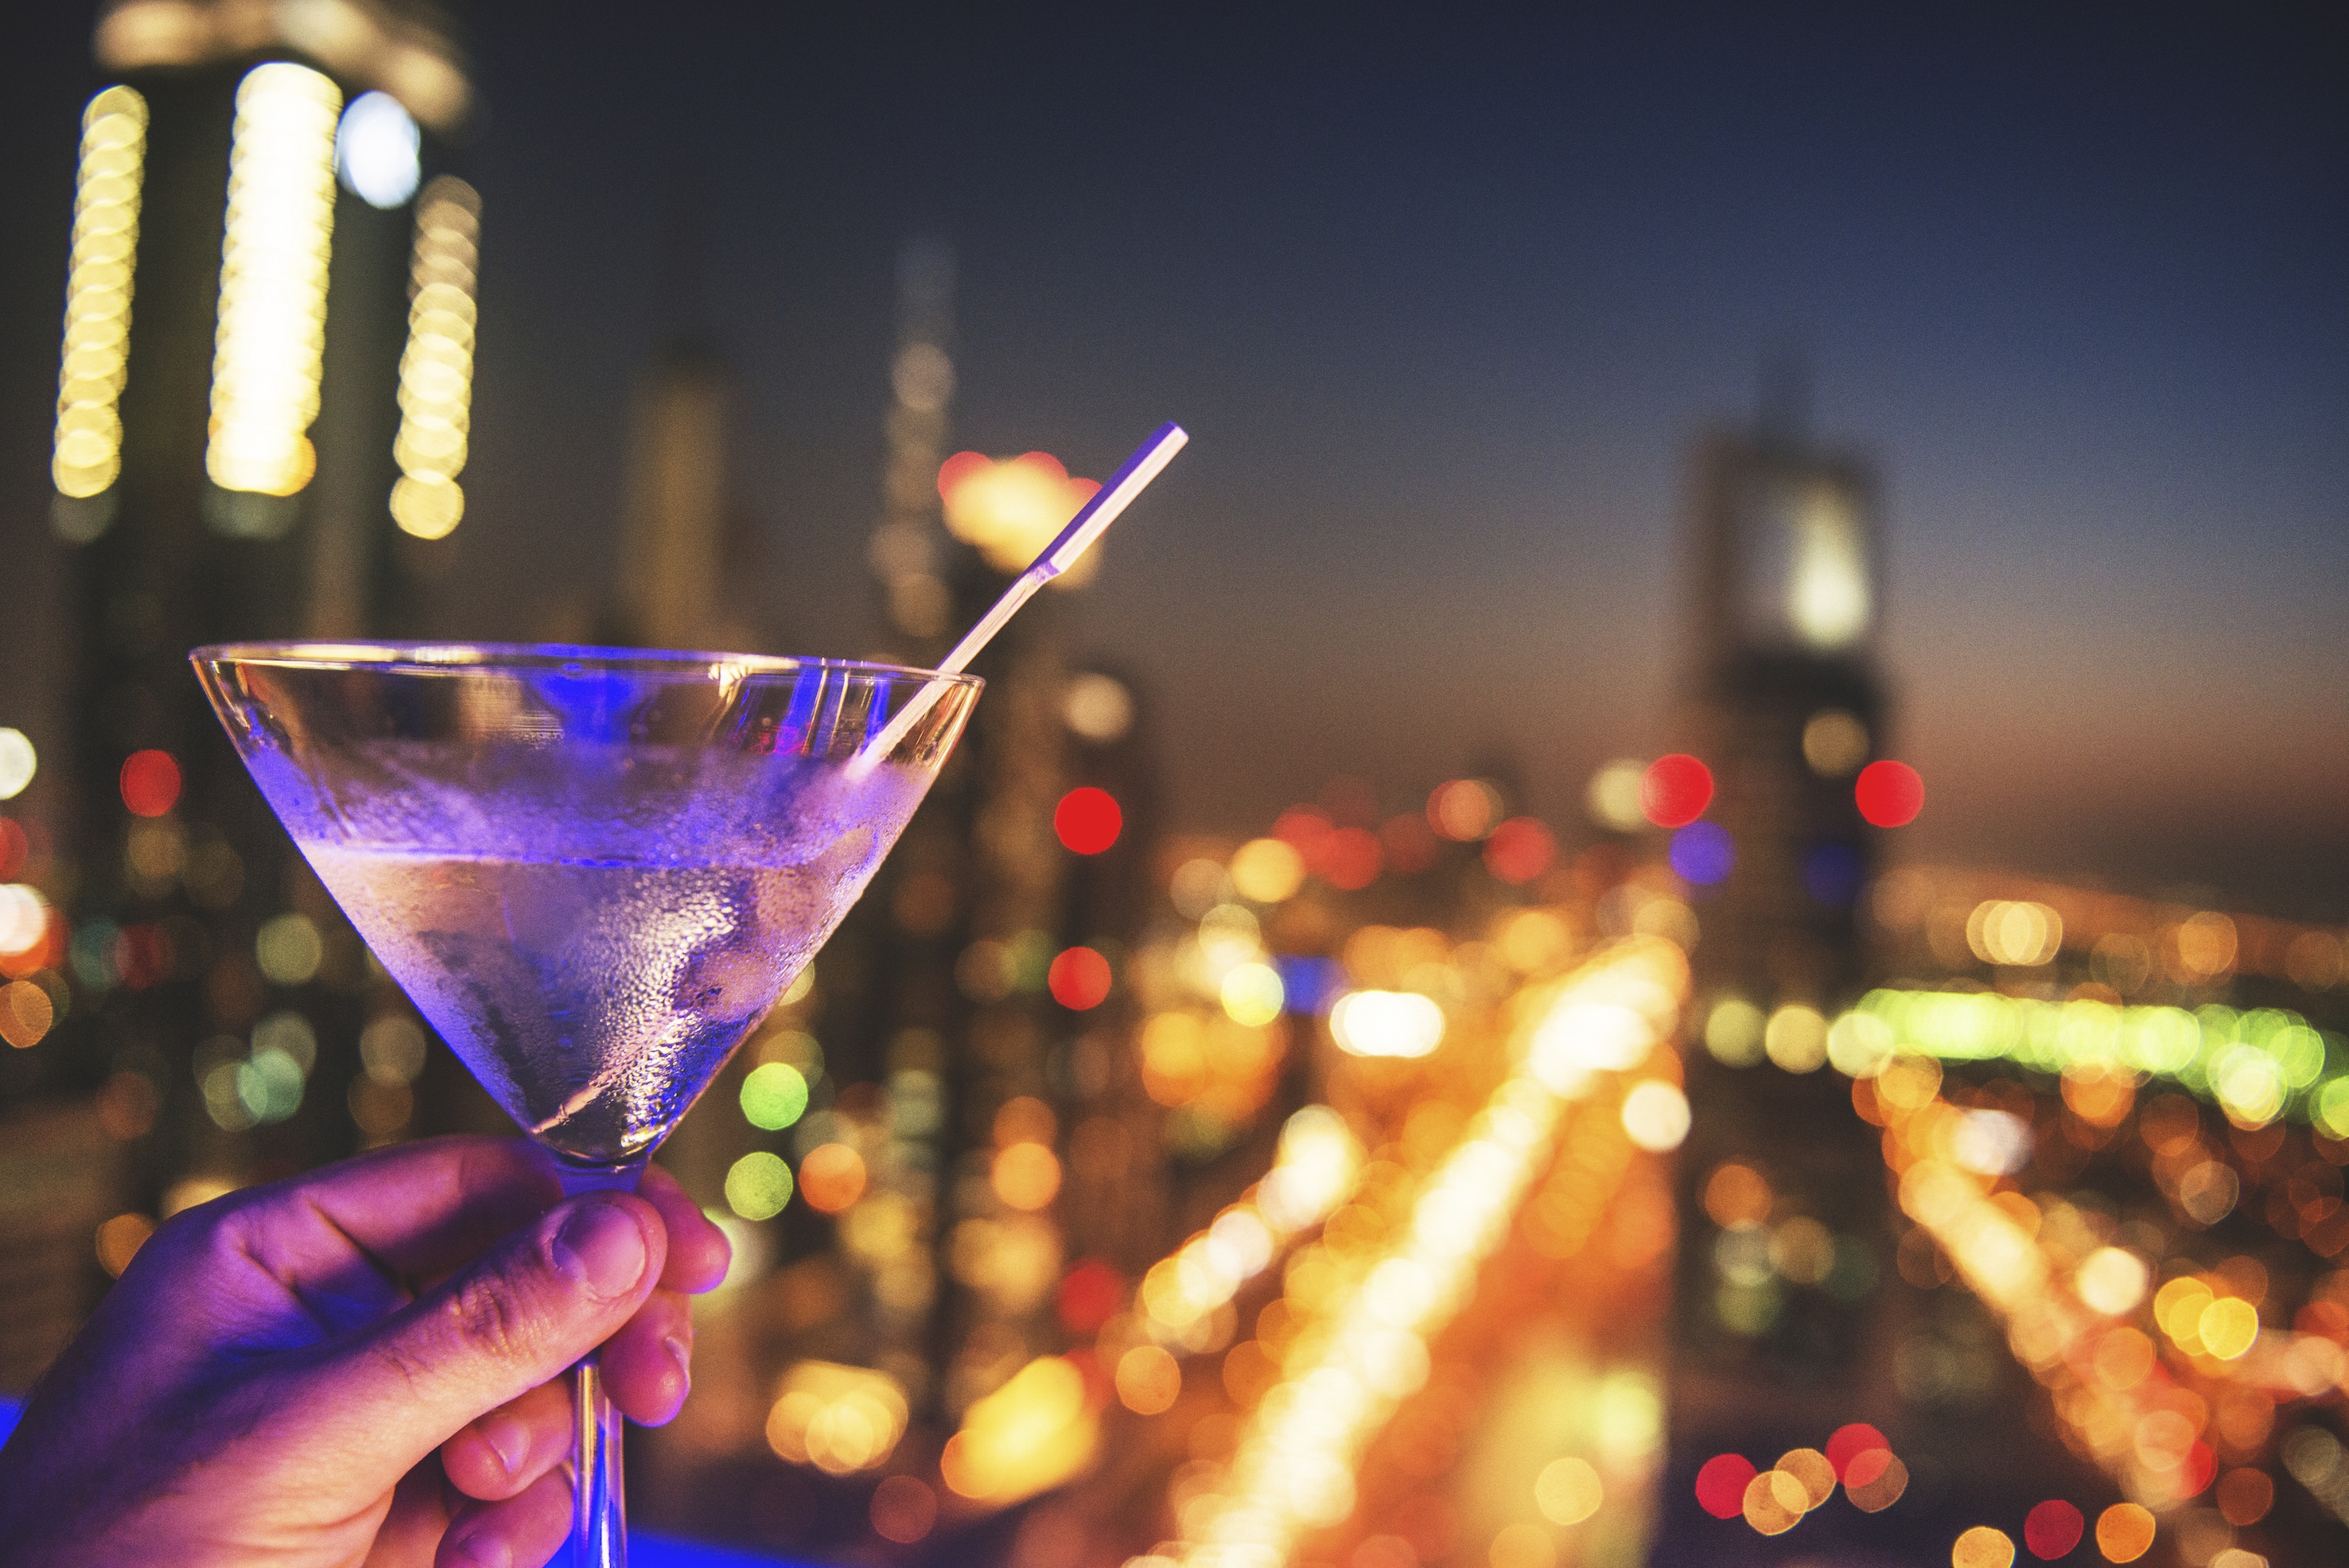 Astana S Finest Nightlife Venues The Astana Times